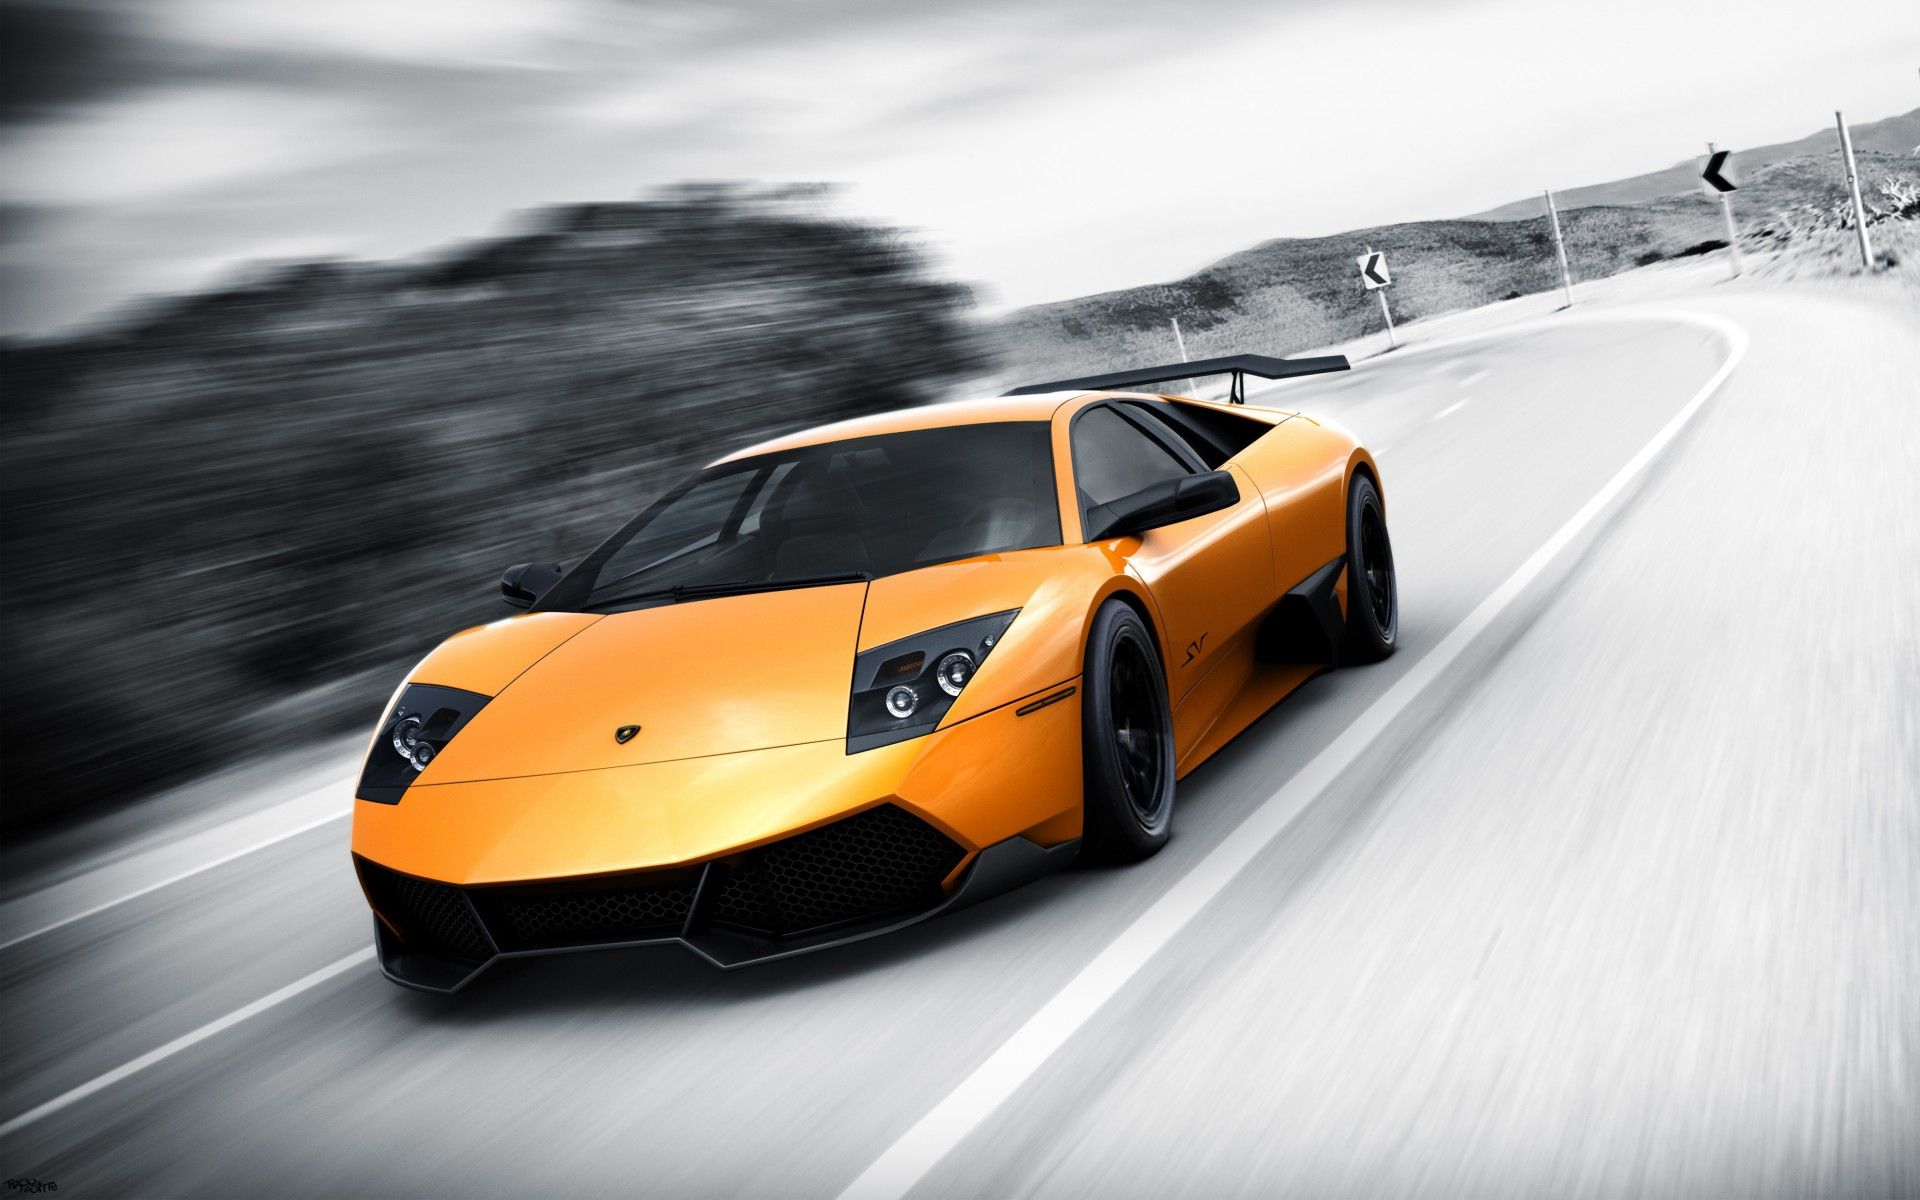 Lamborghini Murcielago Lp670 4 Sv Wallpaper Hd Car Wallpapers Id 2837